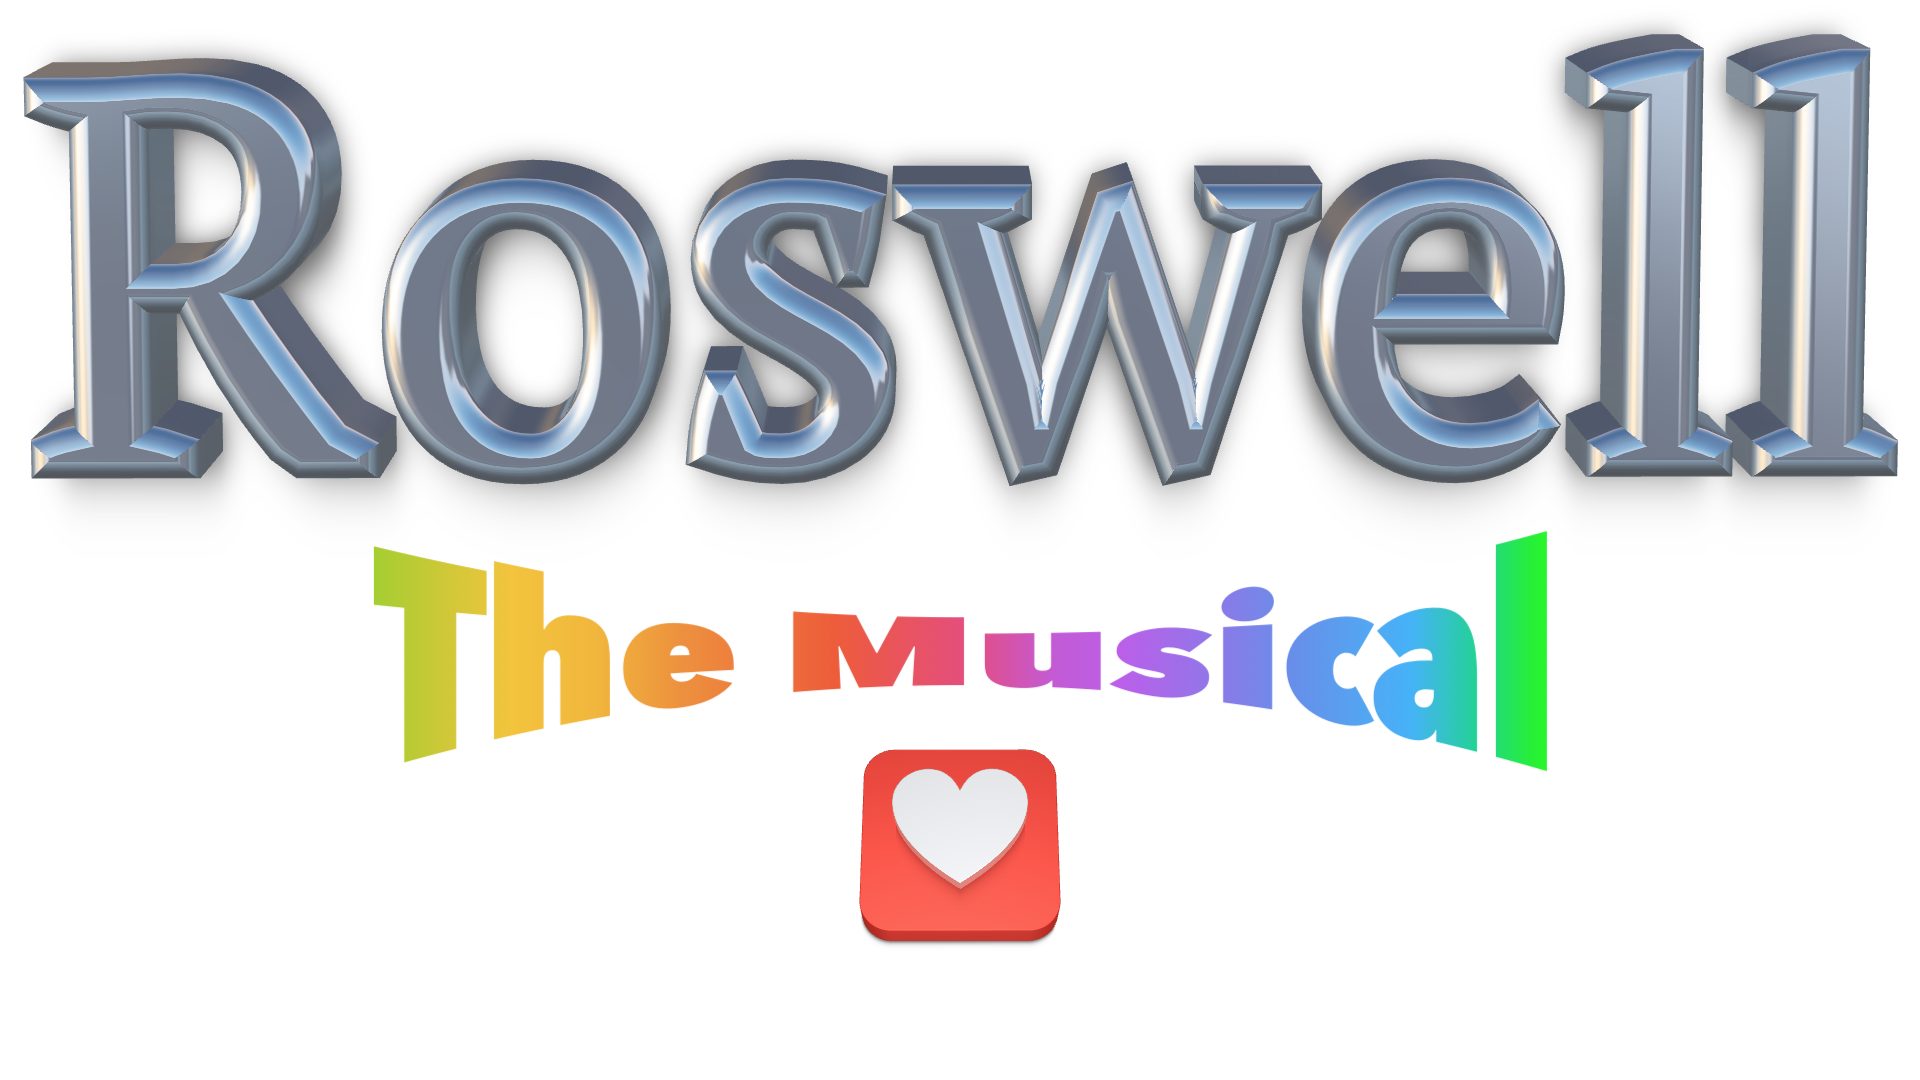 Roswell The Musical